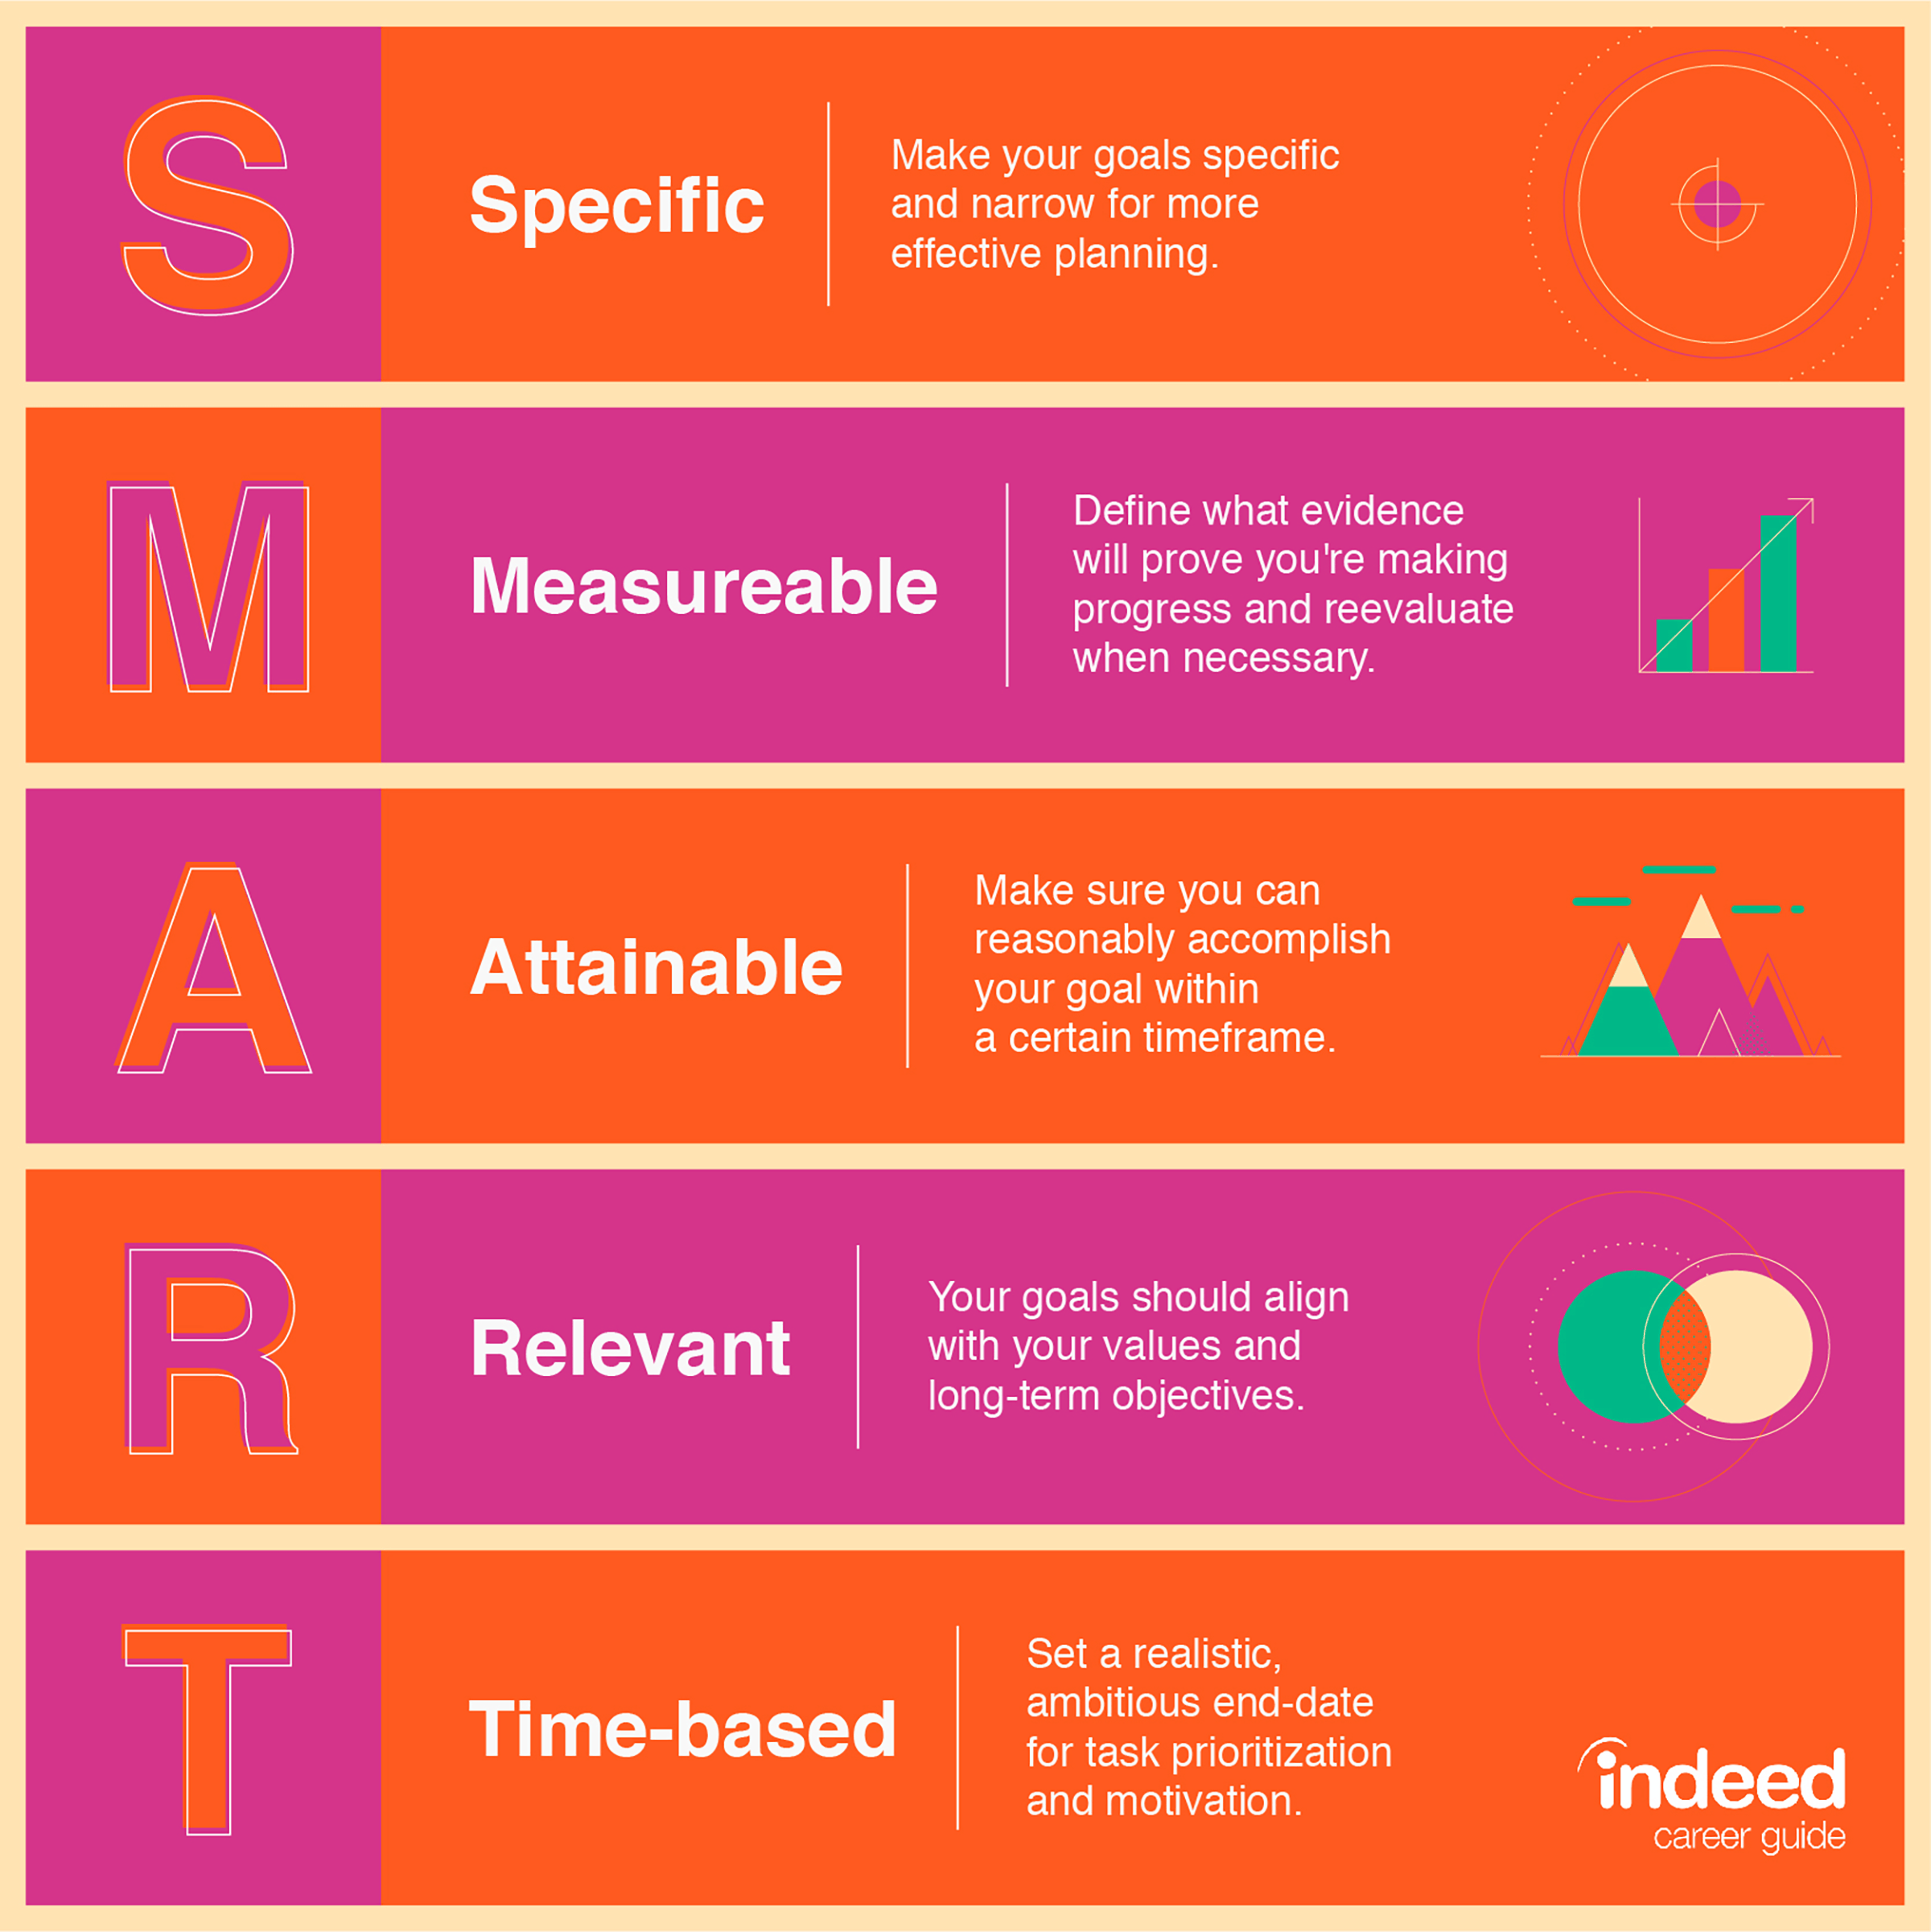 SMART – specific, measurable, attainable, relevant, time-based